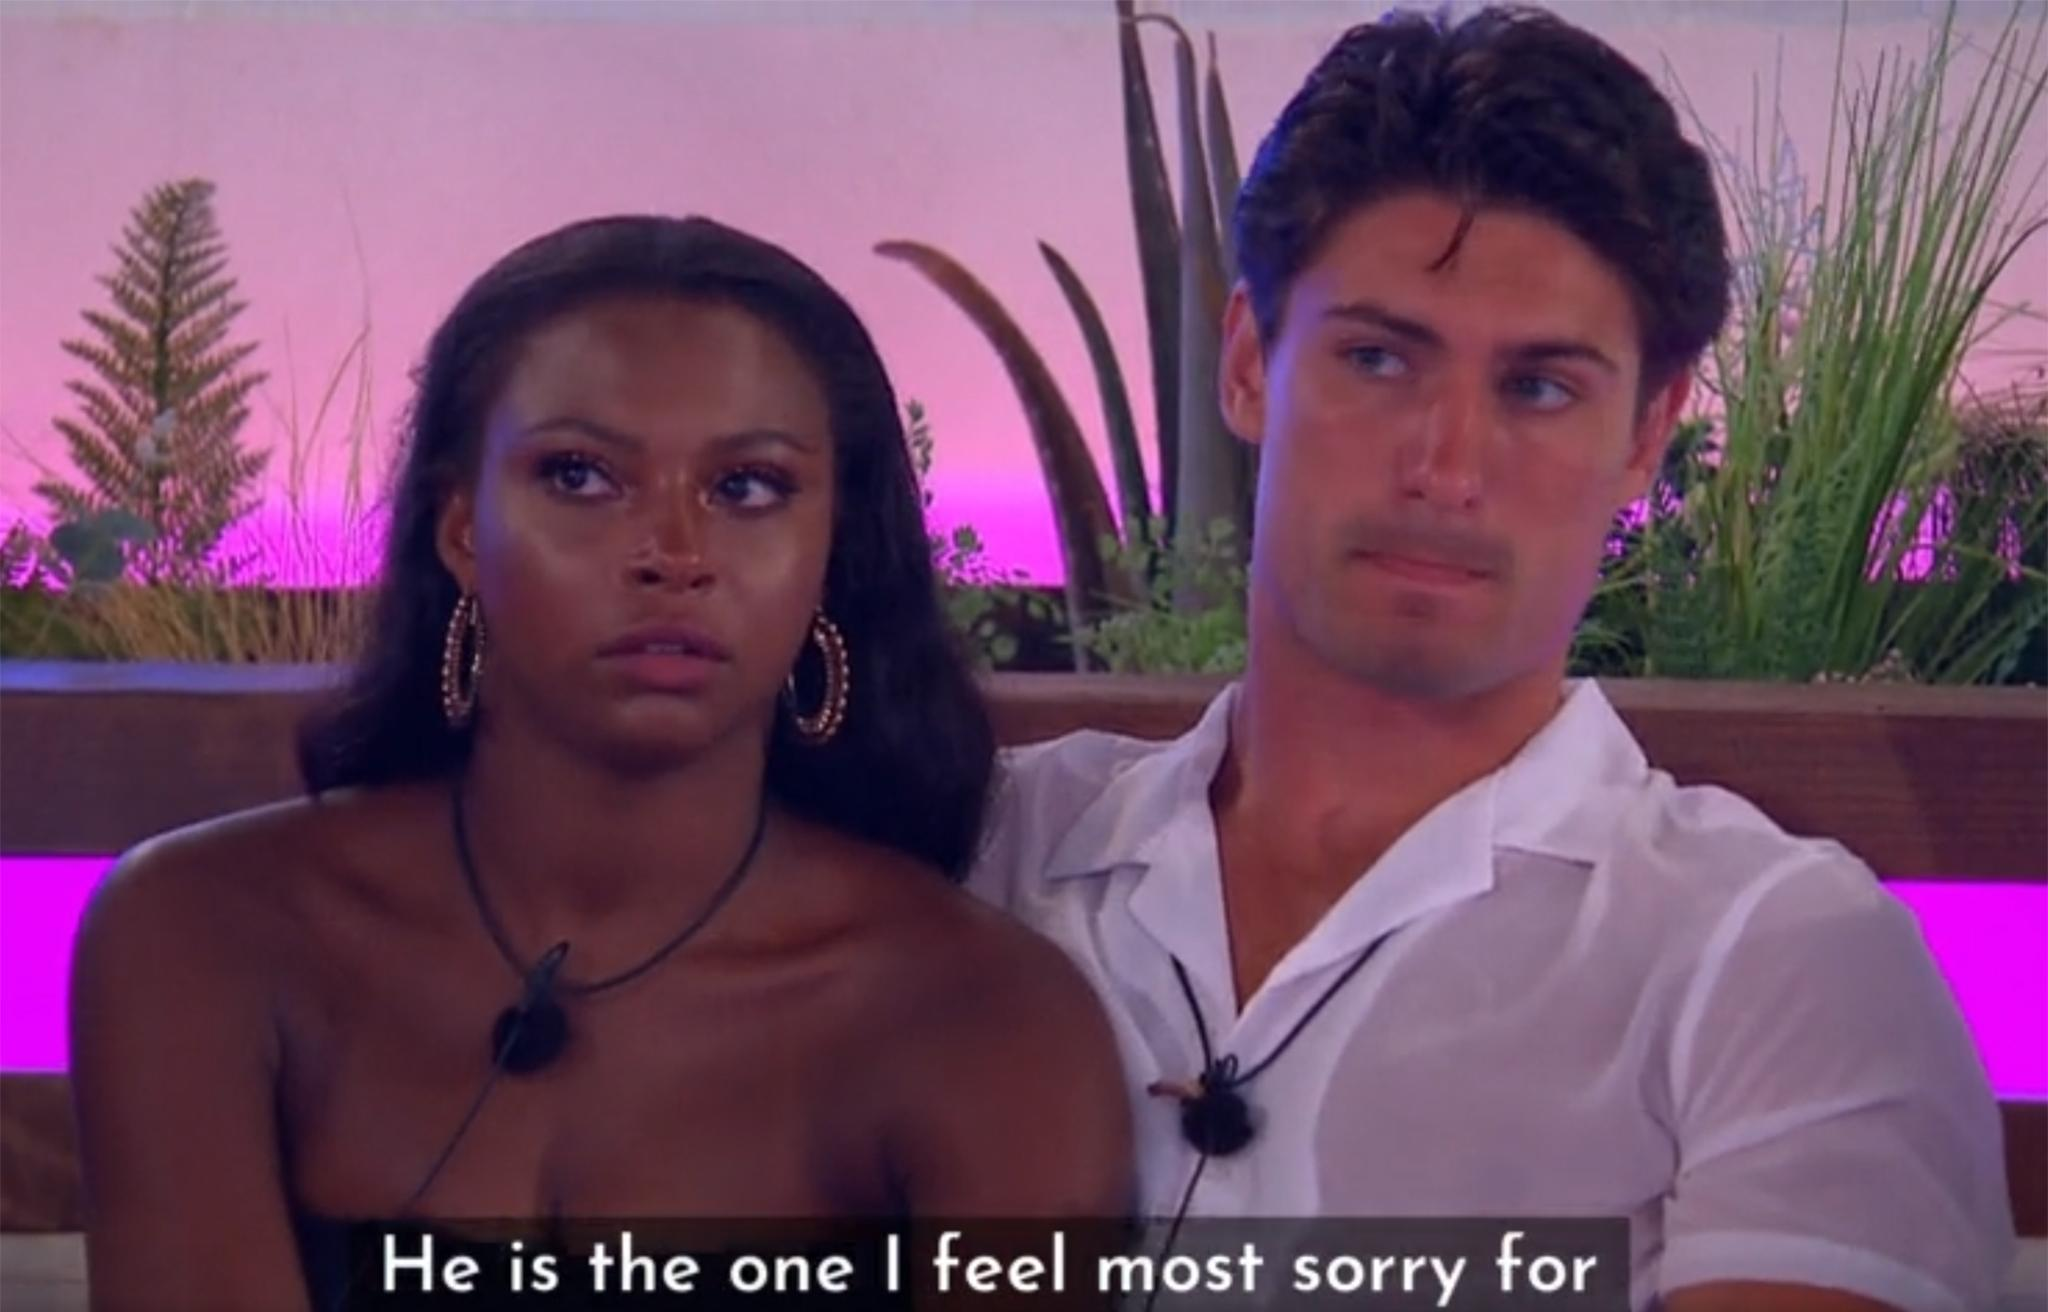 Love Island: Is the lie detector test fake? | The Independent